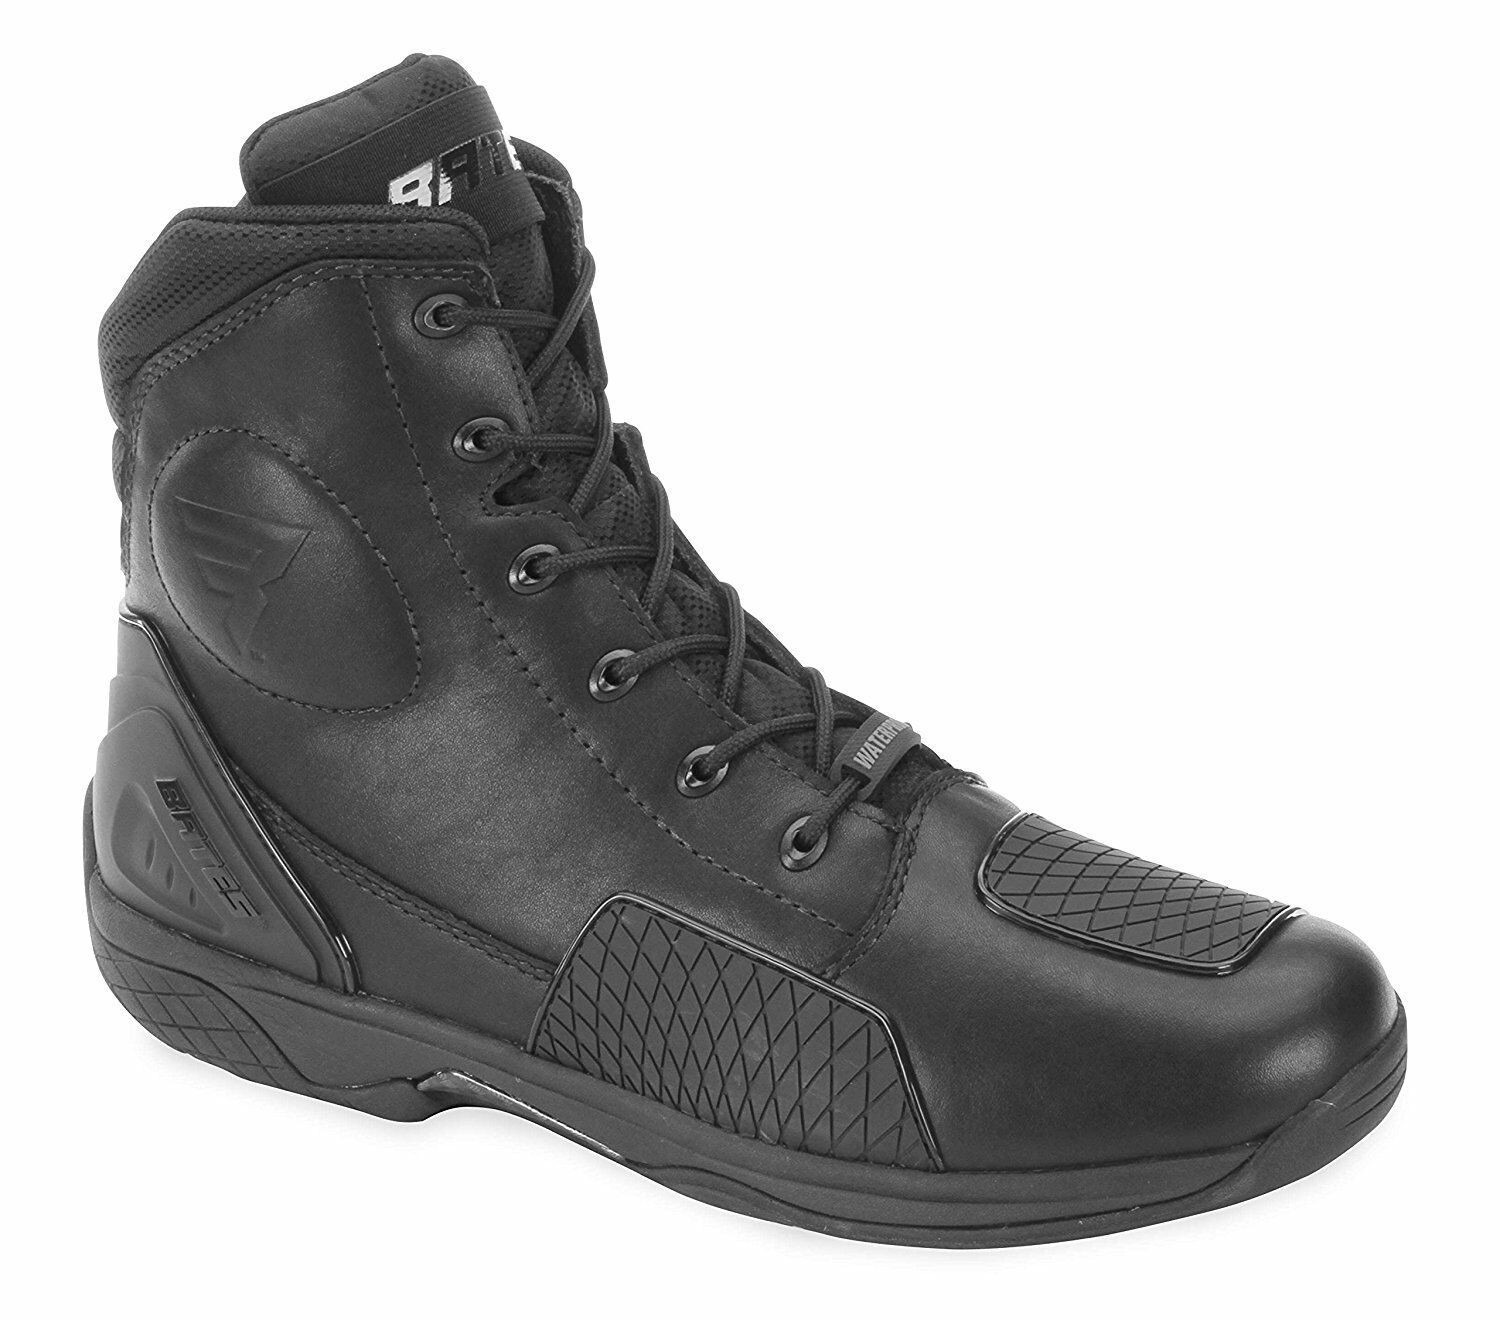 Bates 8800 Mens Adrenaline Performance Motorcycle Stiefel FAST FREE USA SHIPPING